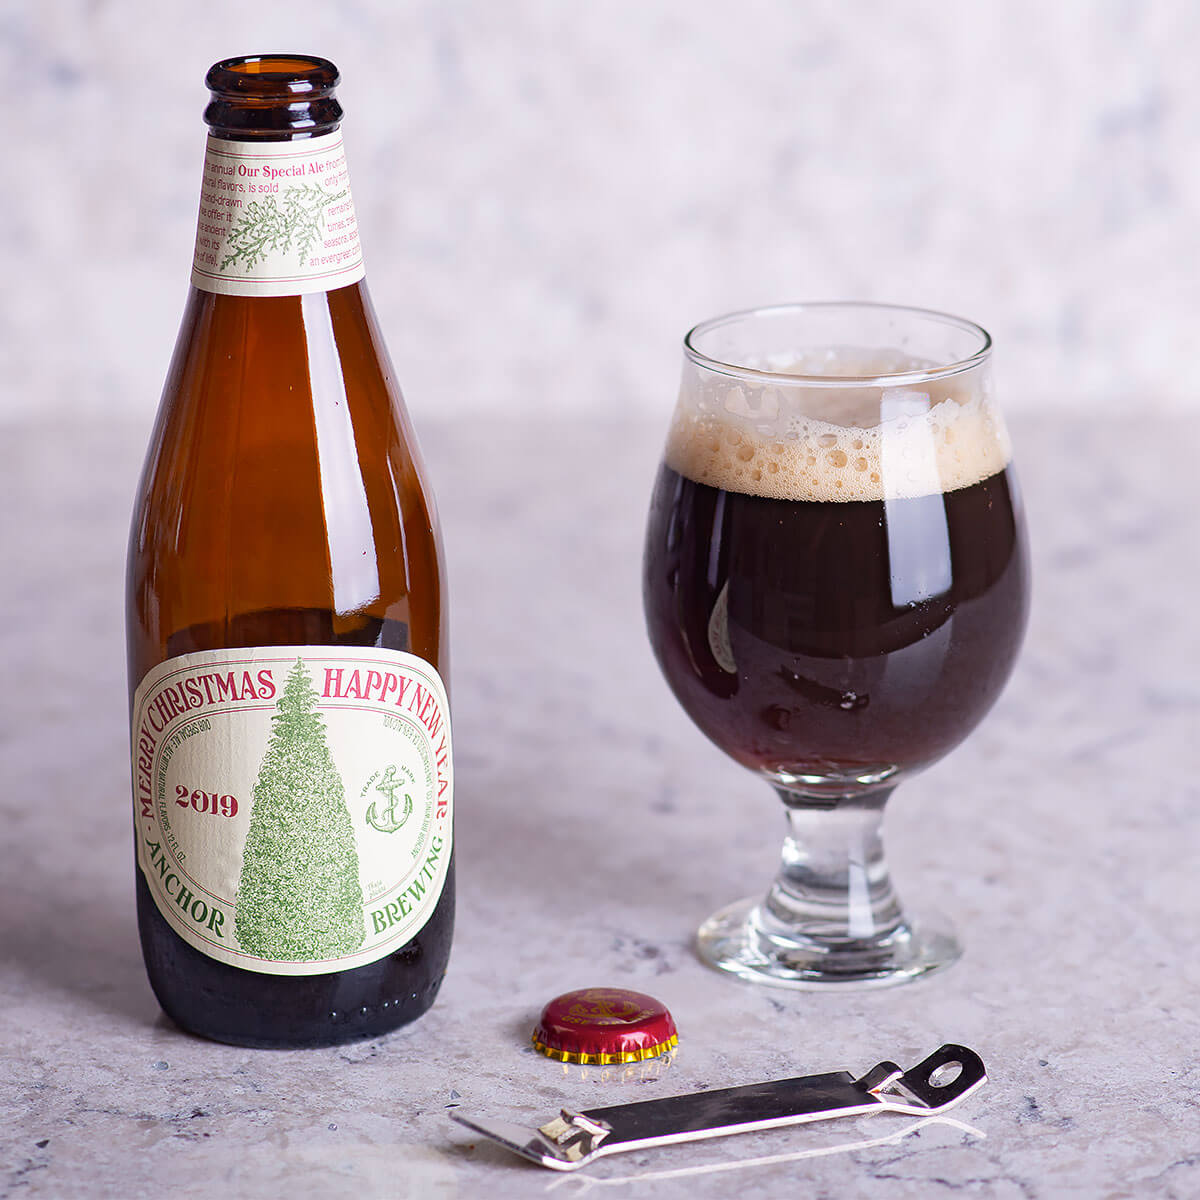 Our Special Ale (Anchor Christmas Ale) is a Winter Warmer by Anchor Brewing that's earthy and warm with a blend of pine, wood, roast, dark chocolate, and spice.